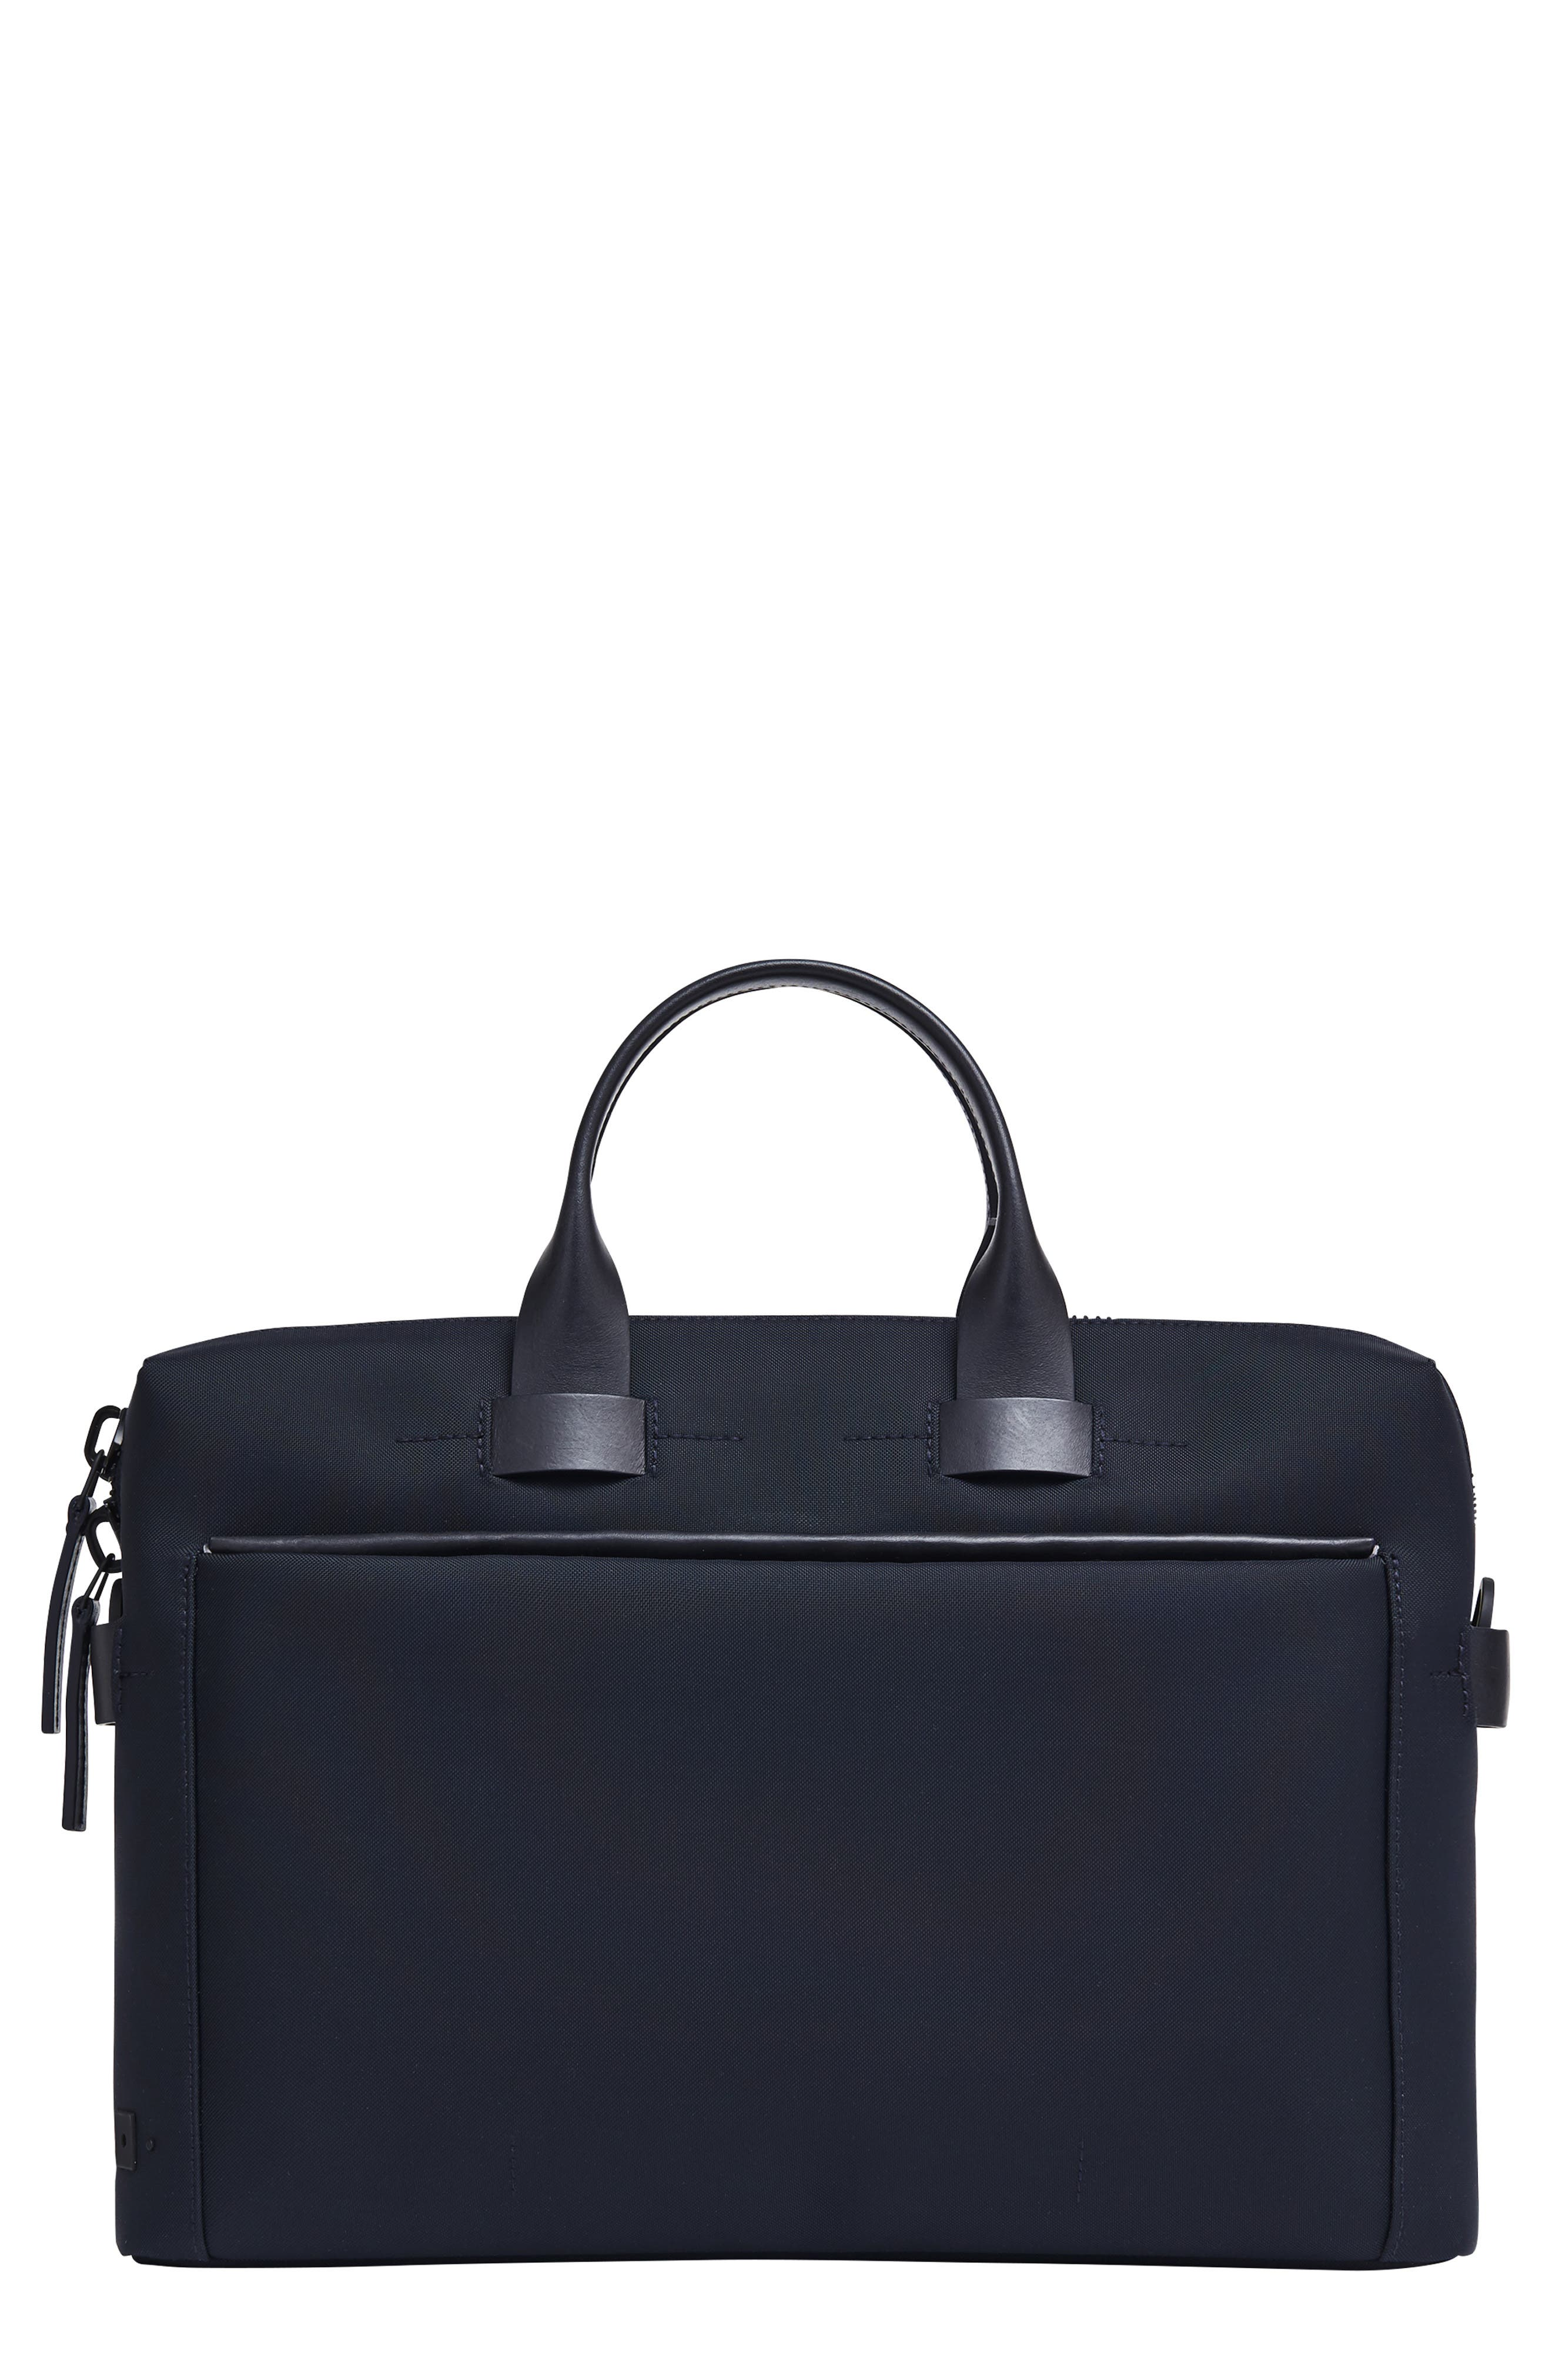 Durable, water-resistant tech defines a slim, stylish briefcase trimmed with supple calfskin leather. Style Name: Troubadour Slim Briefcase. Style Number: 5634844. Available in stores.